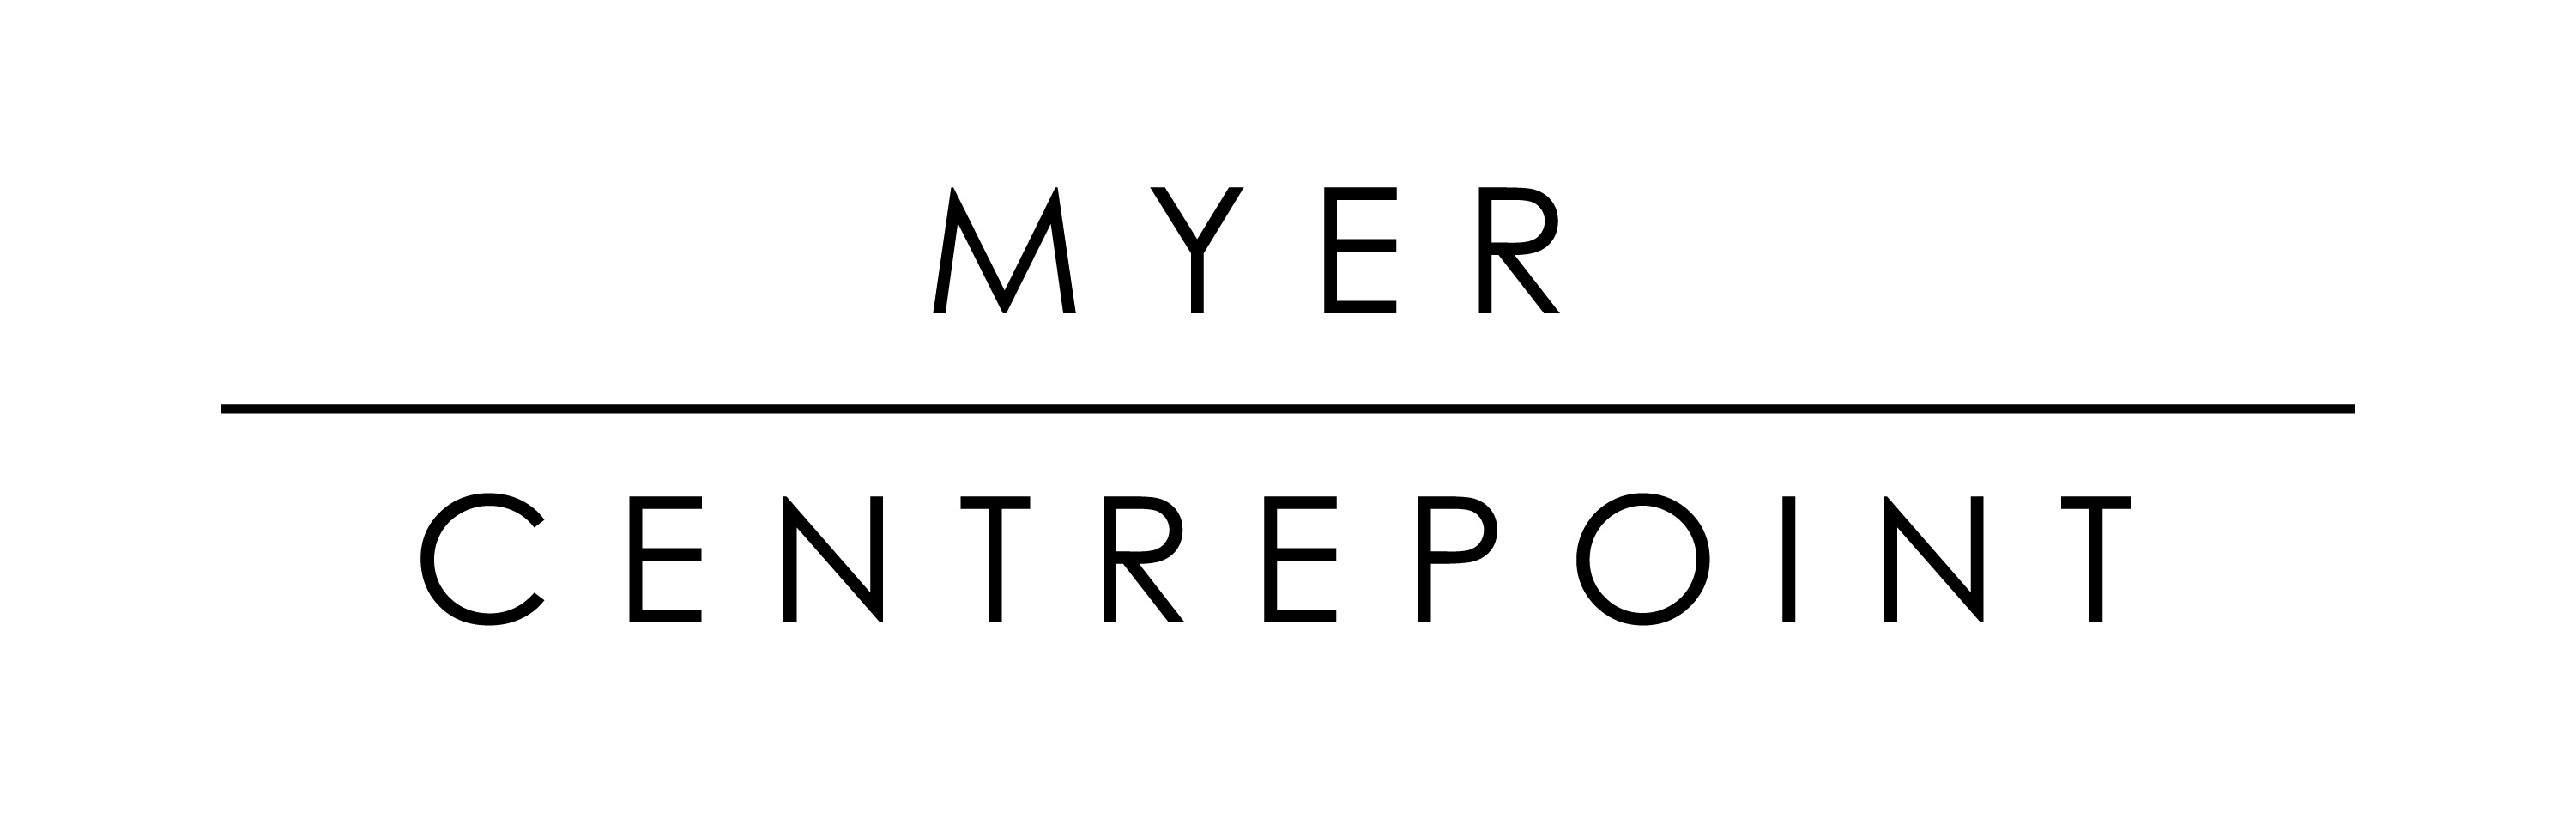 Trading Hours - Myer Centrepoint